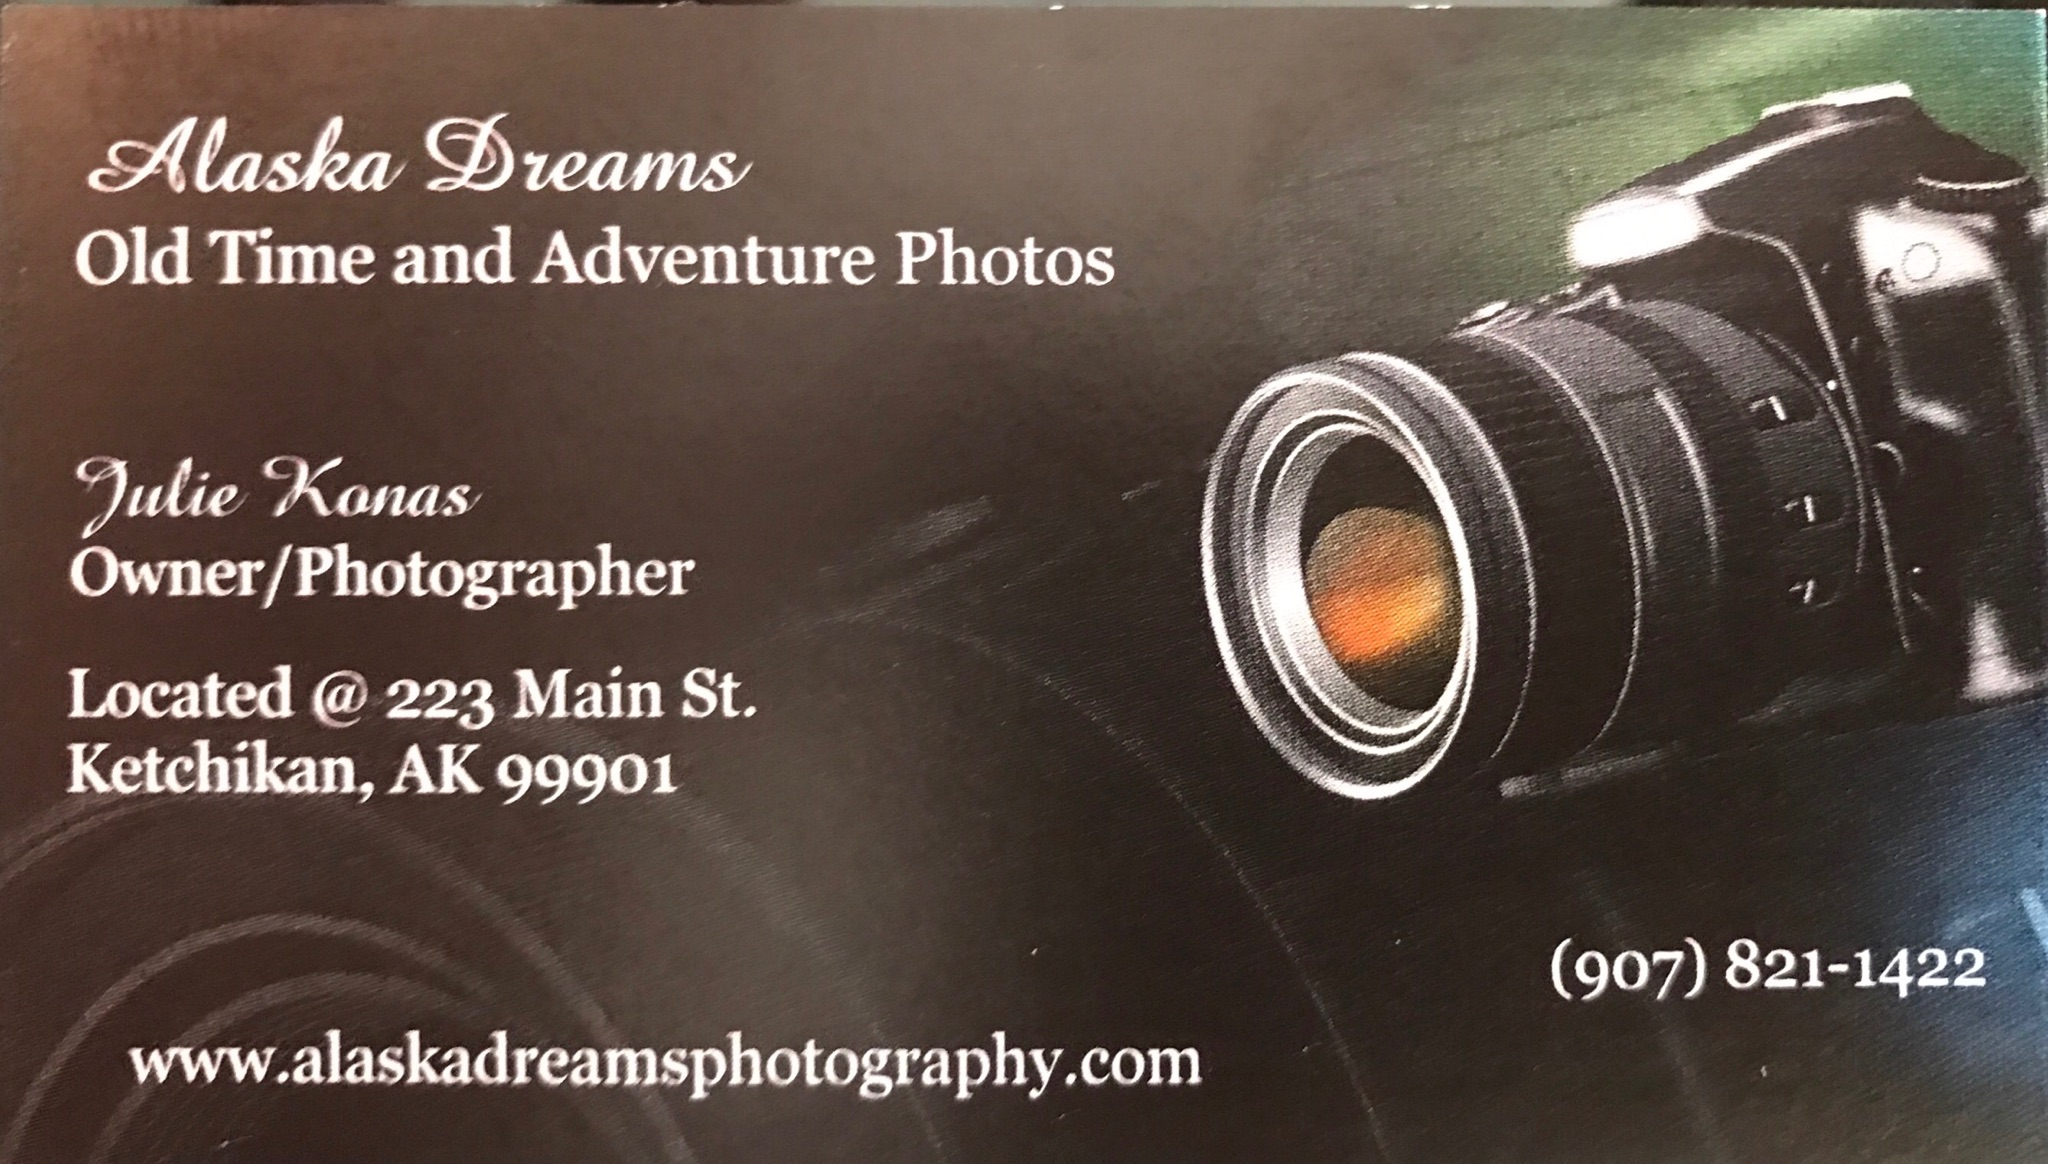 Alaska Dreams Photography - Where you can ride a moose, hunt a bear, catch fish, go kayaking, be a lumberjack and much more! *All the things we weren't going to do for reals